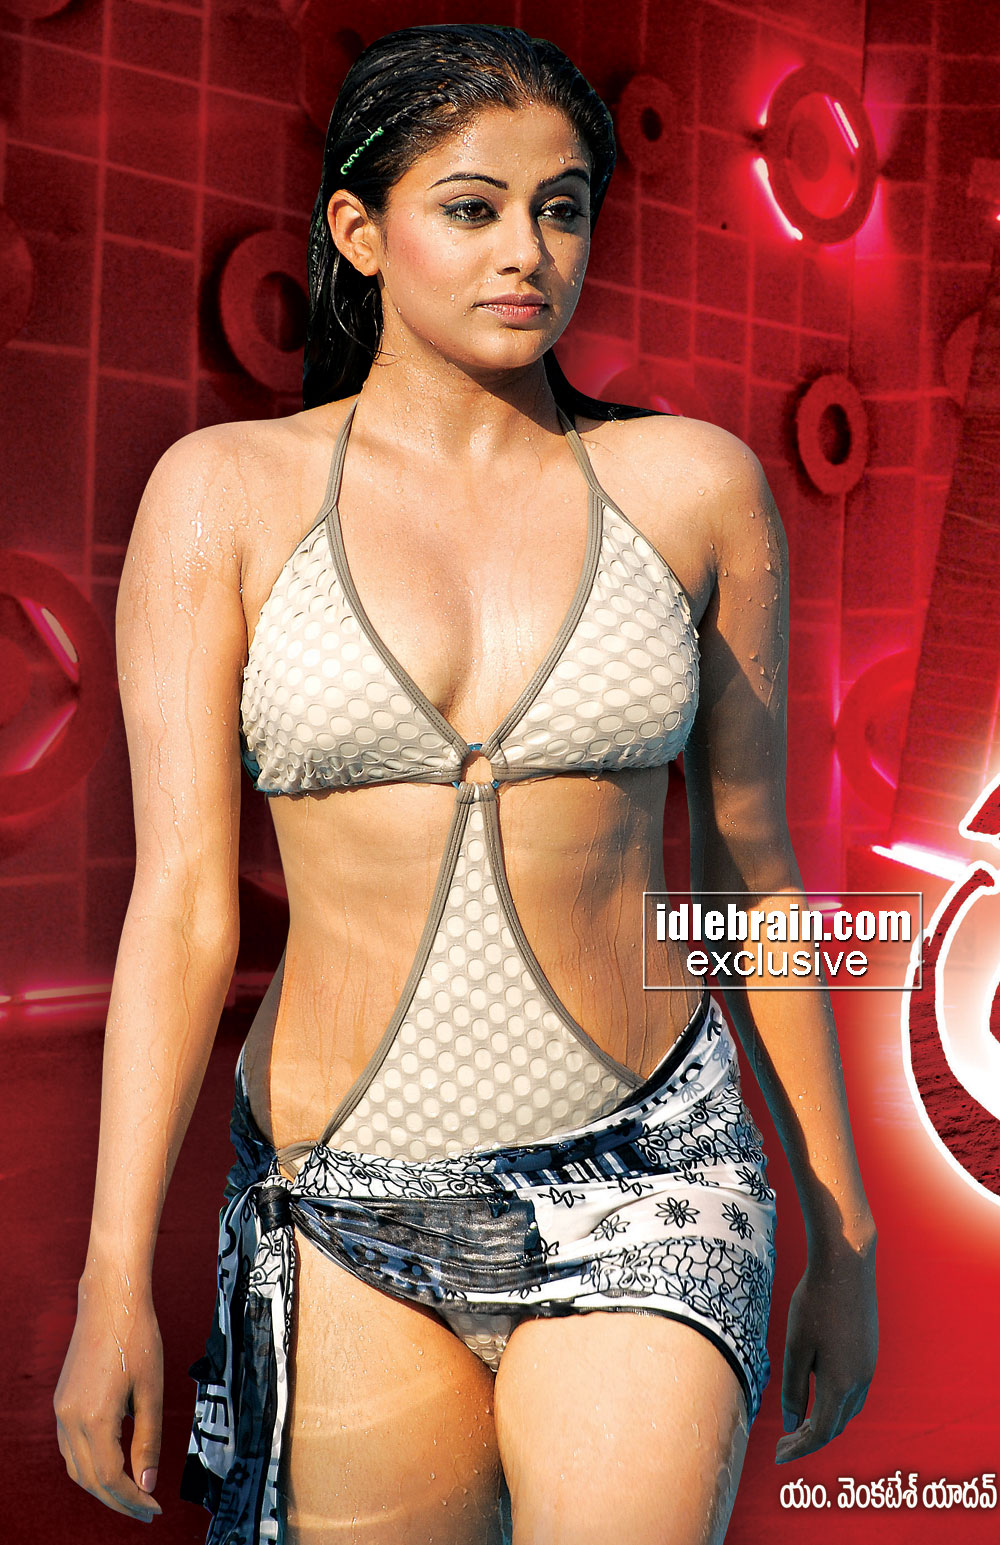 Indian Hot Actress Pictures Bollywood Hot Actress -2414